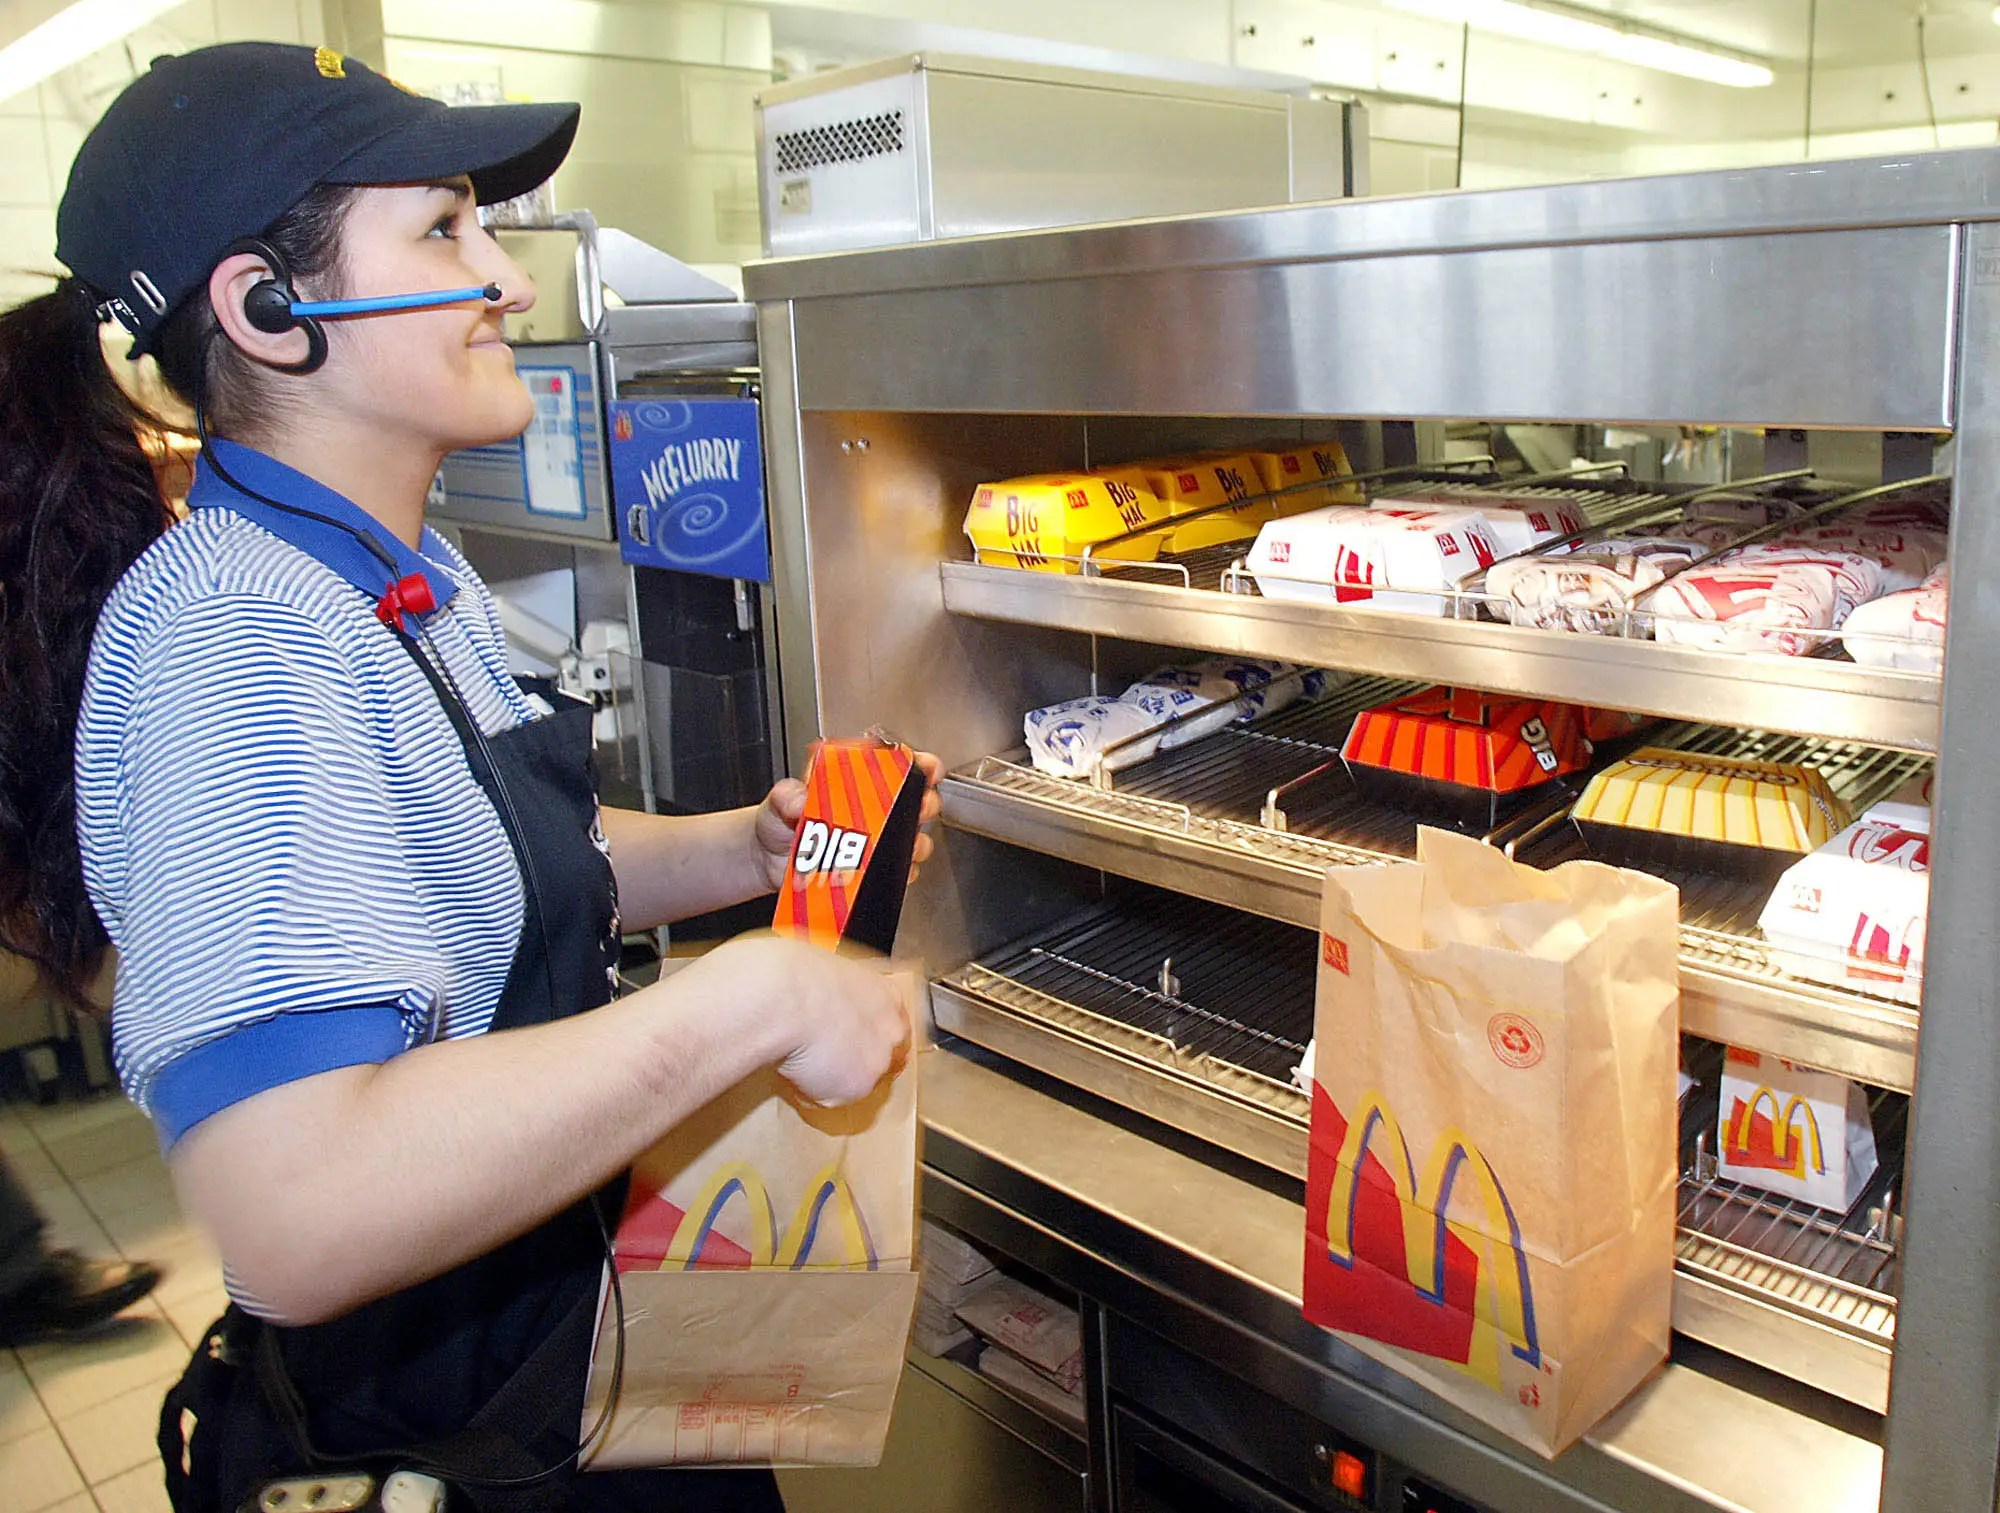 According to company estimates, one in every eight American workers has been employed by McDonald's